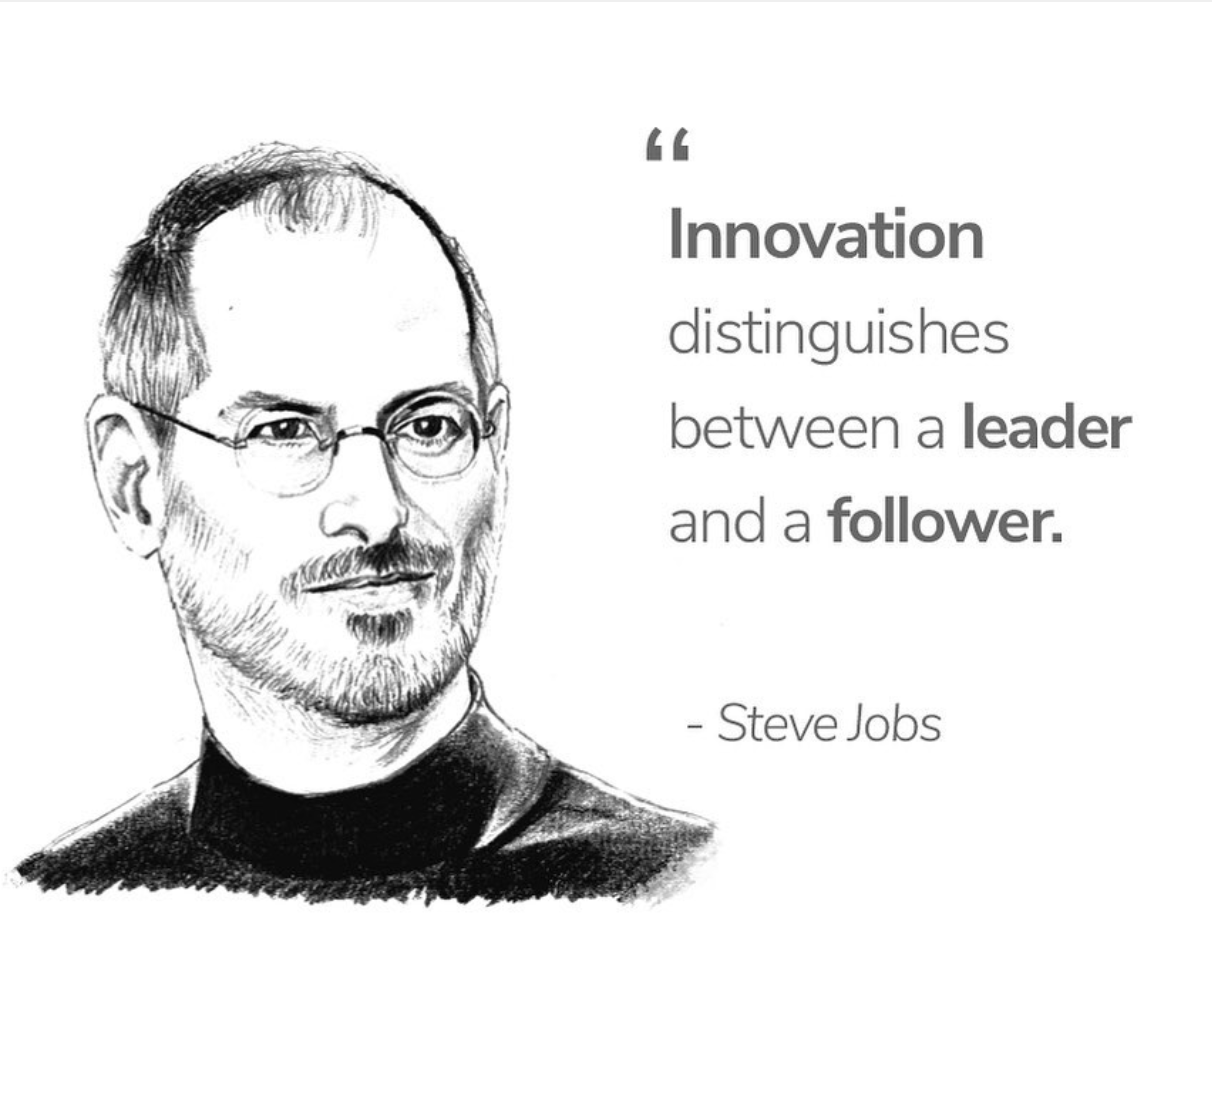 [Image] Innovation is what distinguishes a leader from a follower